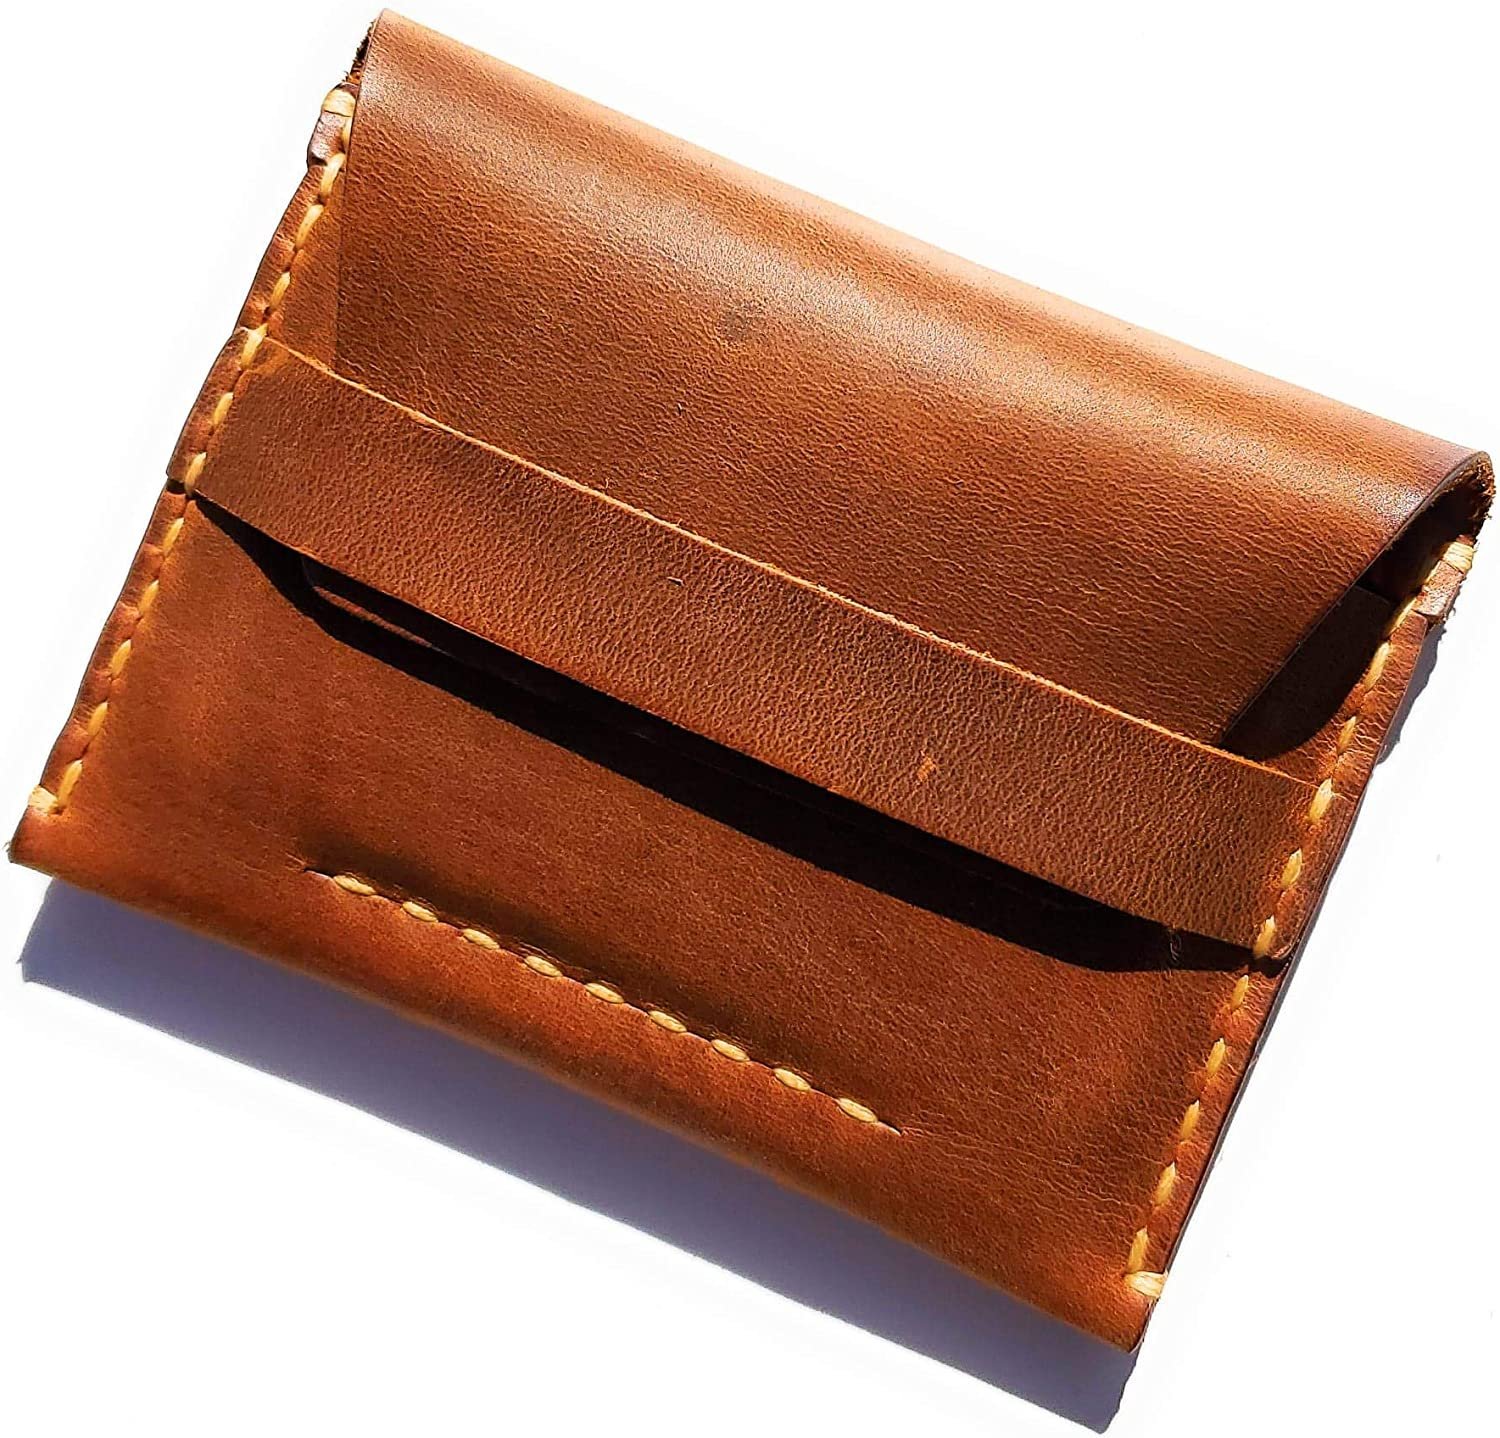 MyMesken- Leather Card Wallet for Men- Credit Card Holder- Minimalist Wallet for Men- Genuine Leather with Hand stitching